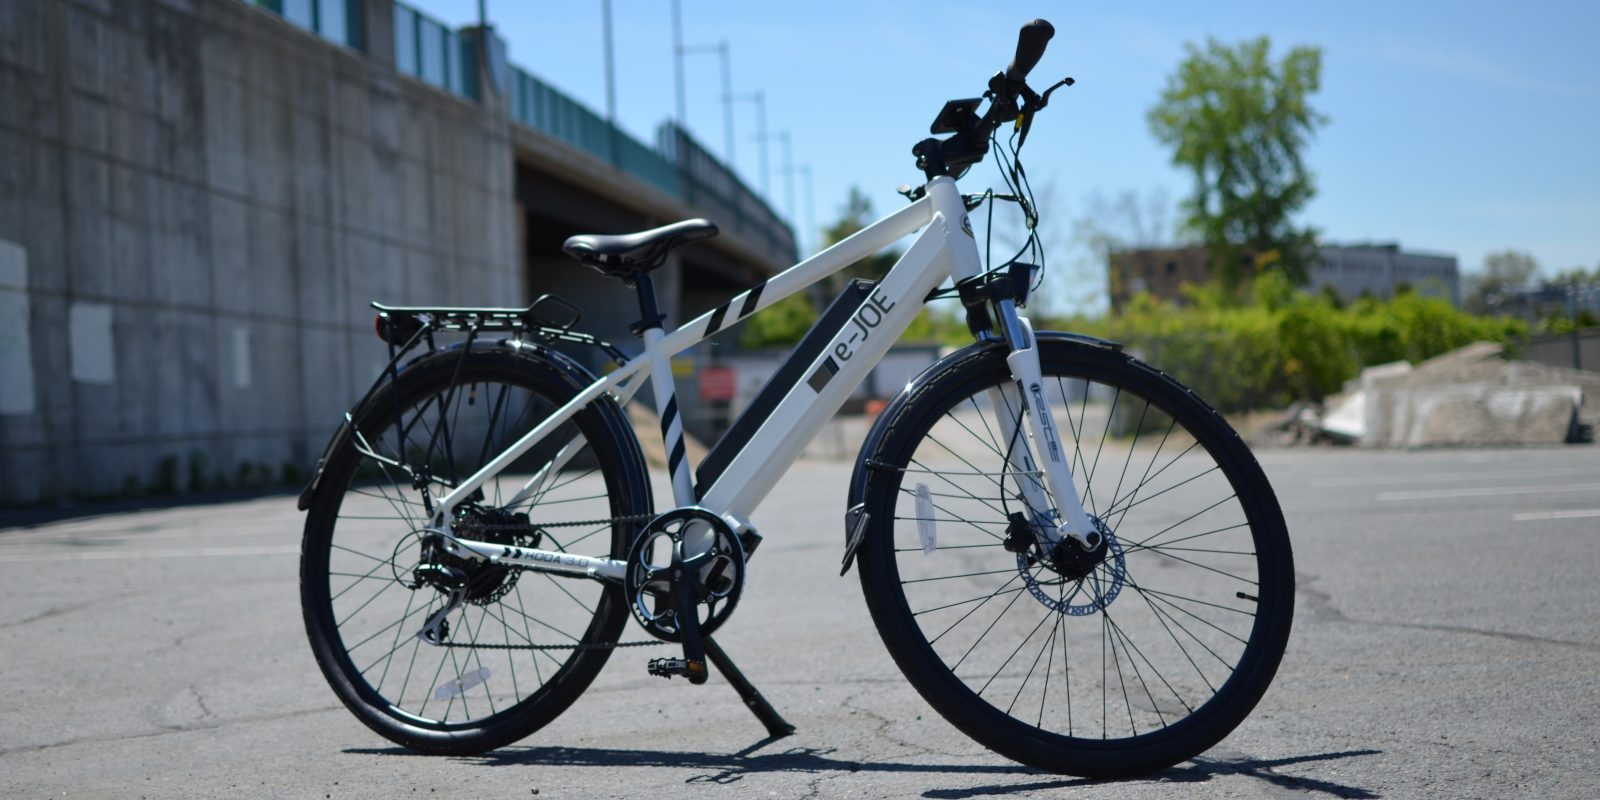 e-JOE KODA 3.0 electric commuter bike review – an affordable long range e-bike